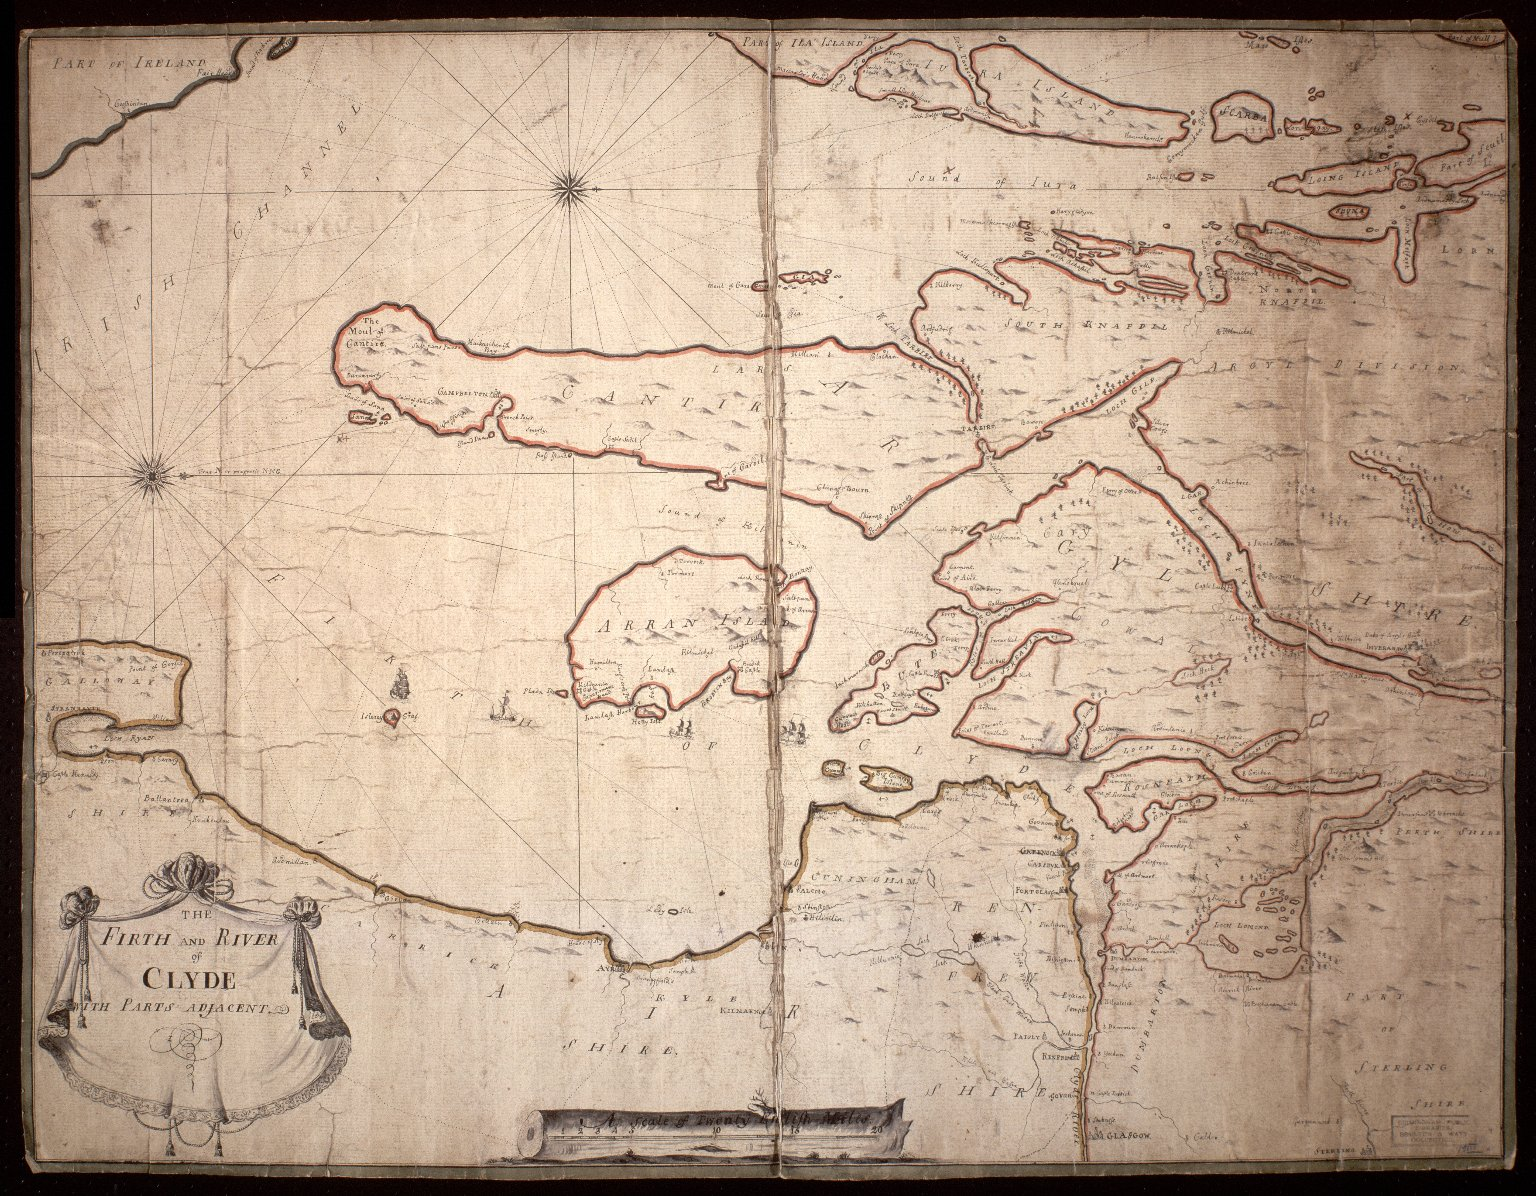 [Map of the Firth & River of Clyde] [1 of 1]